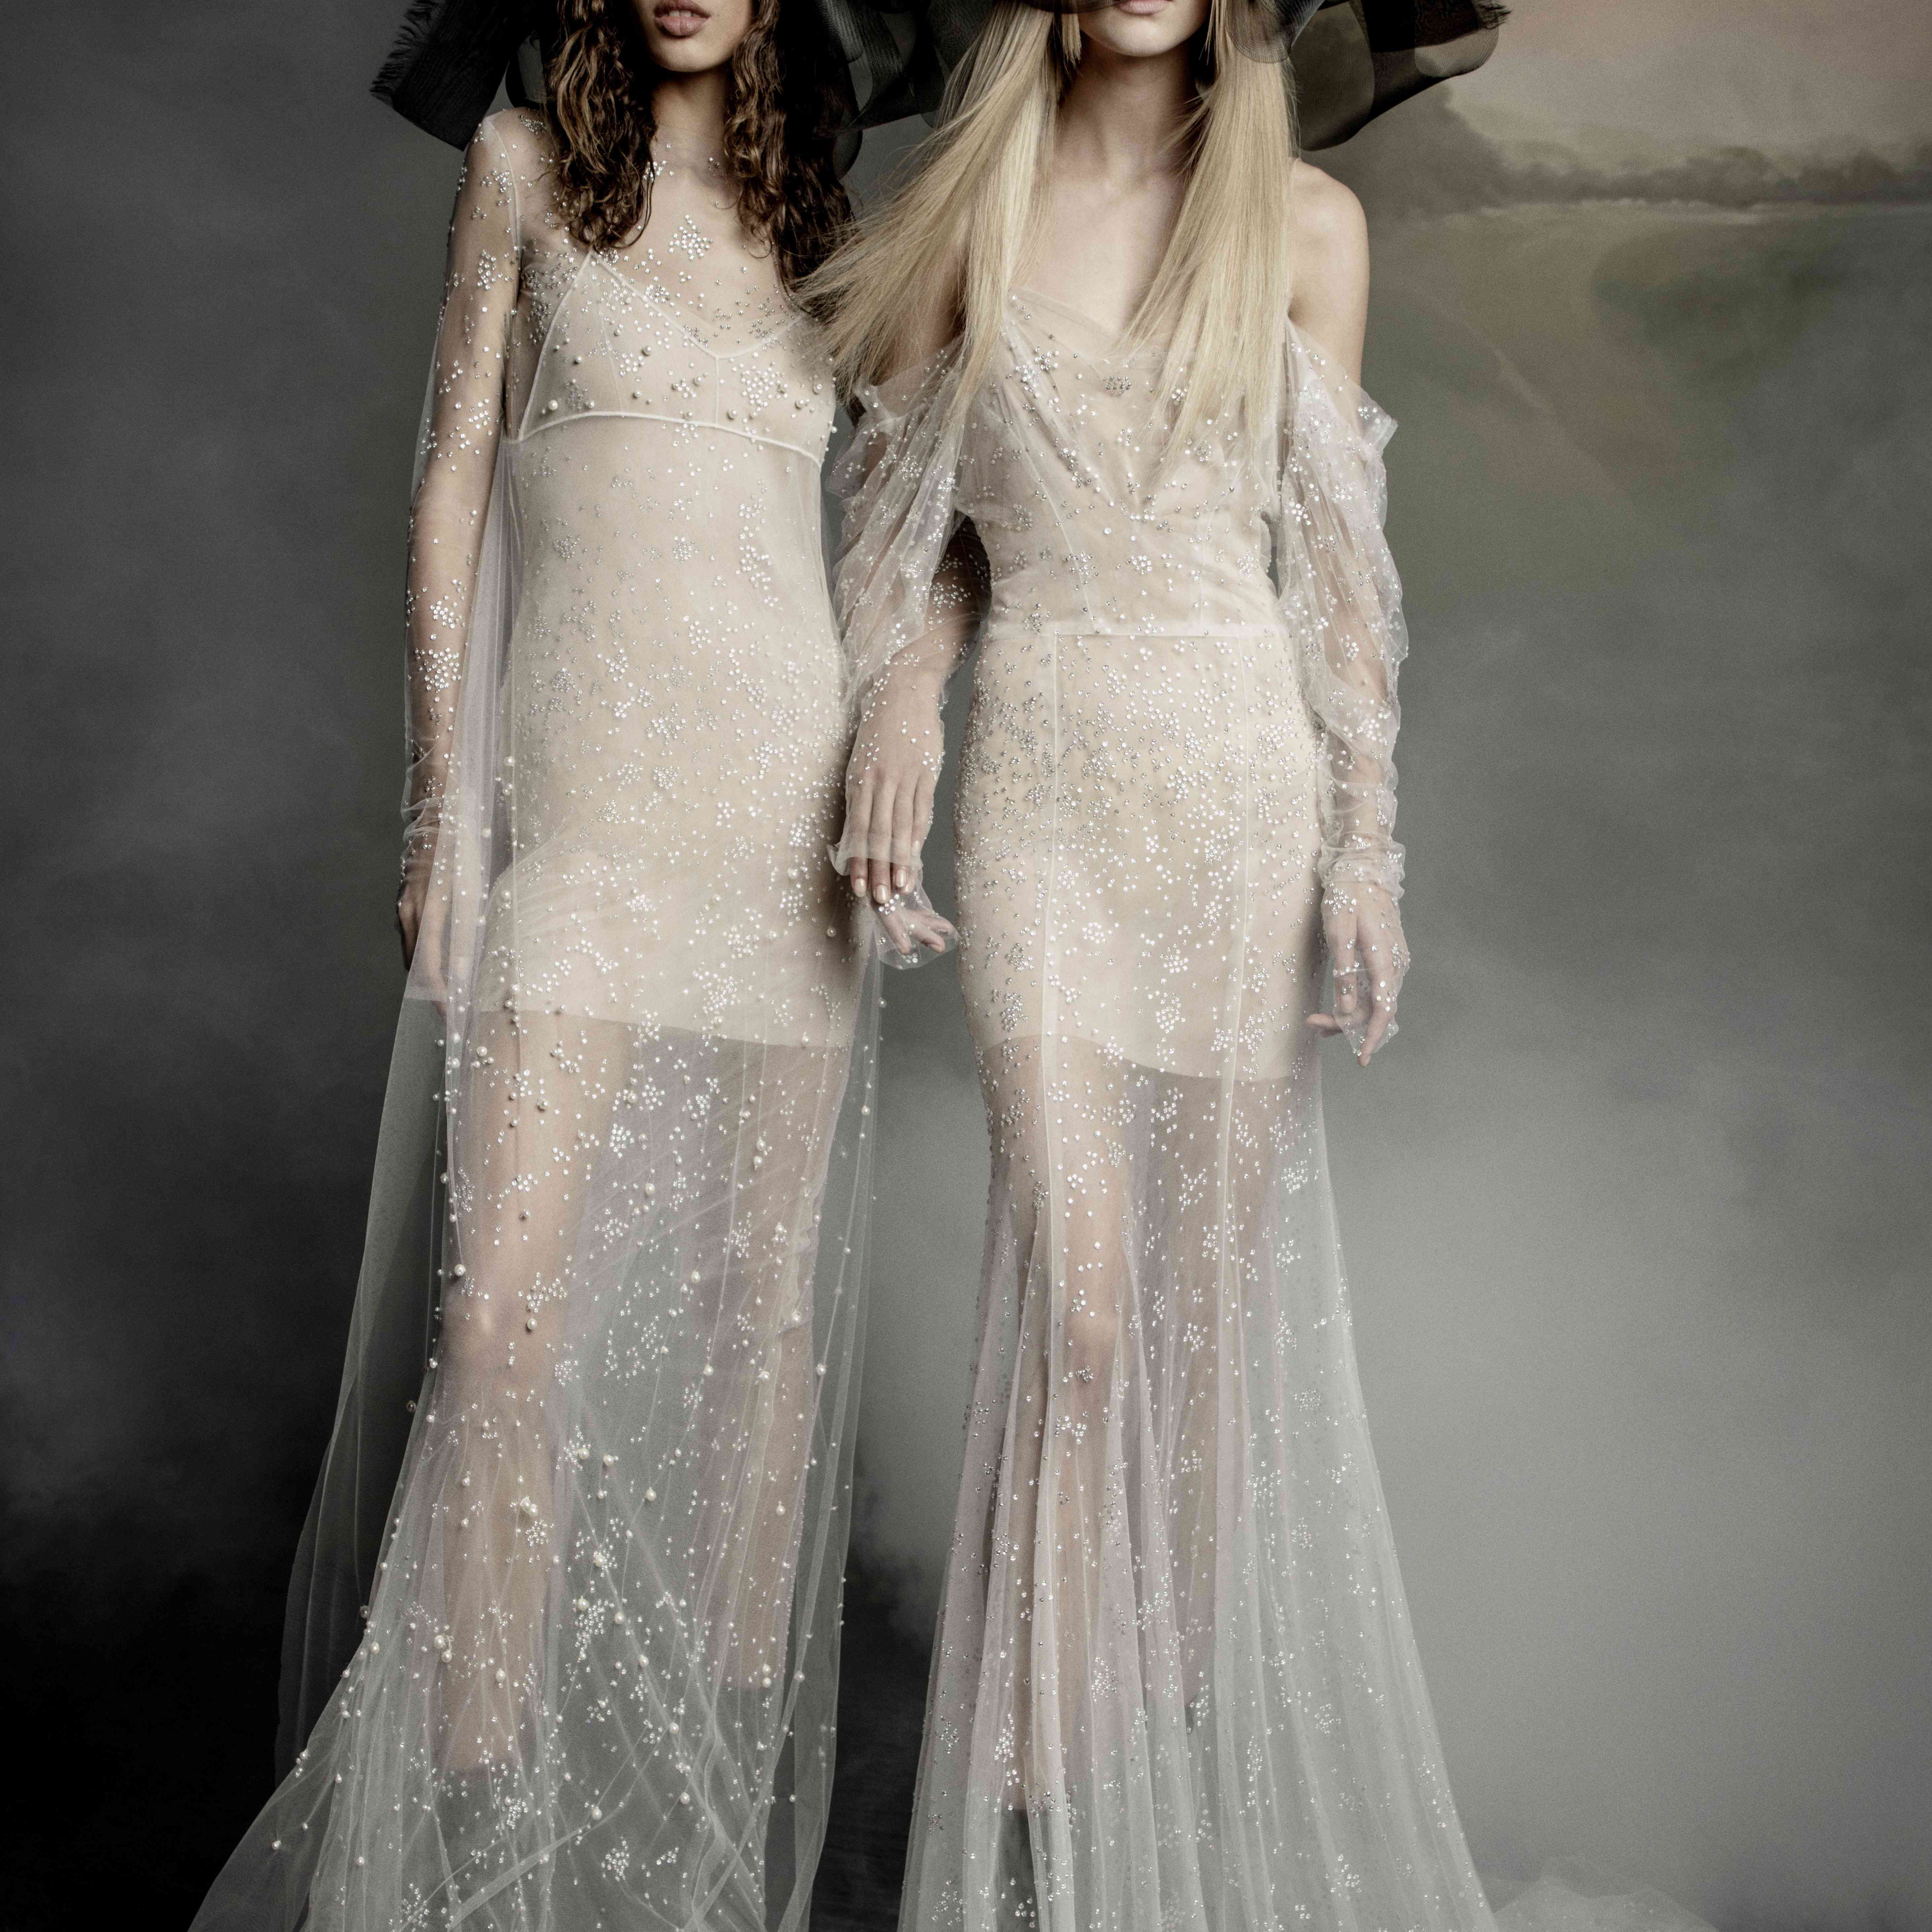 Two models in sheer tulle column gowns with crystals